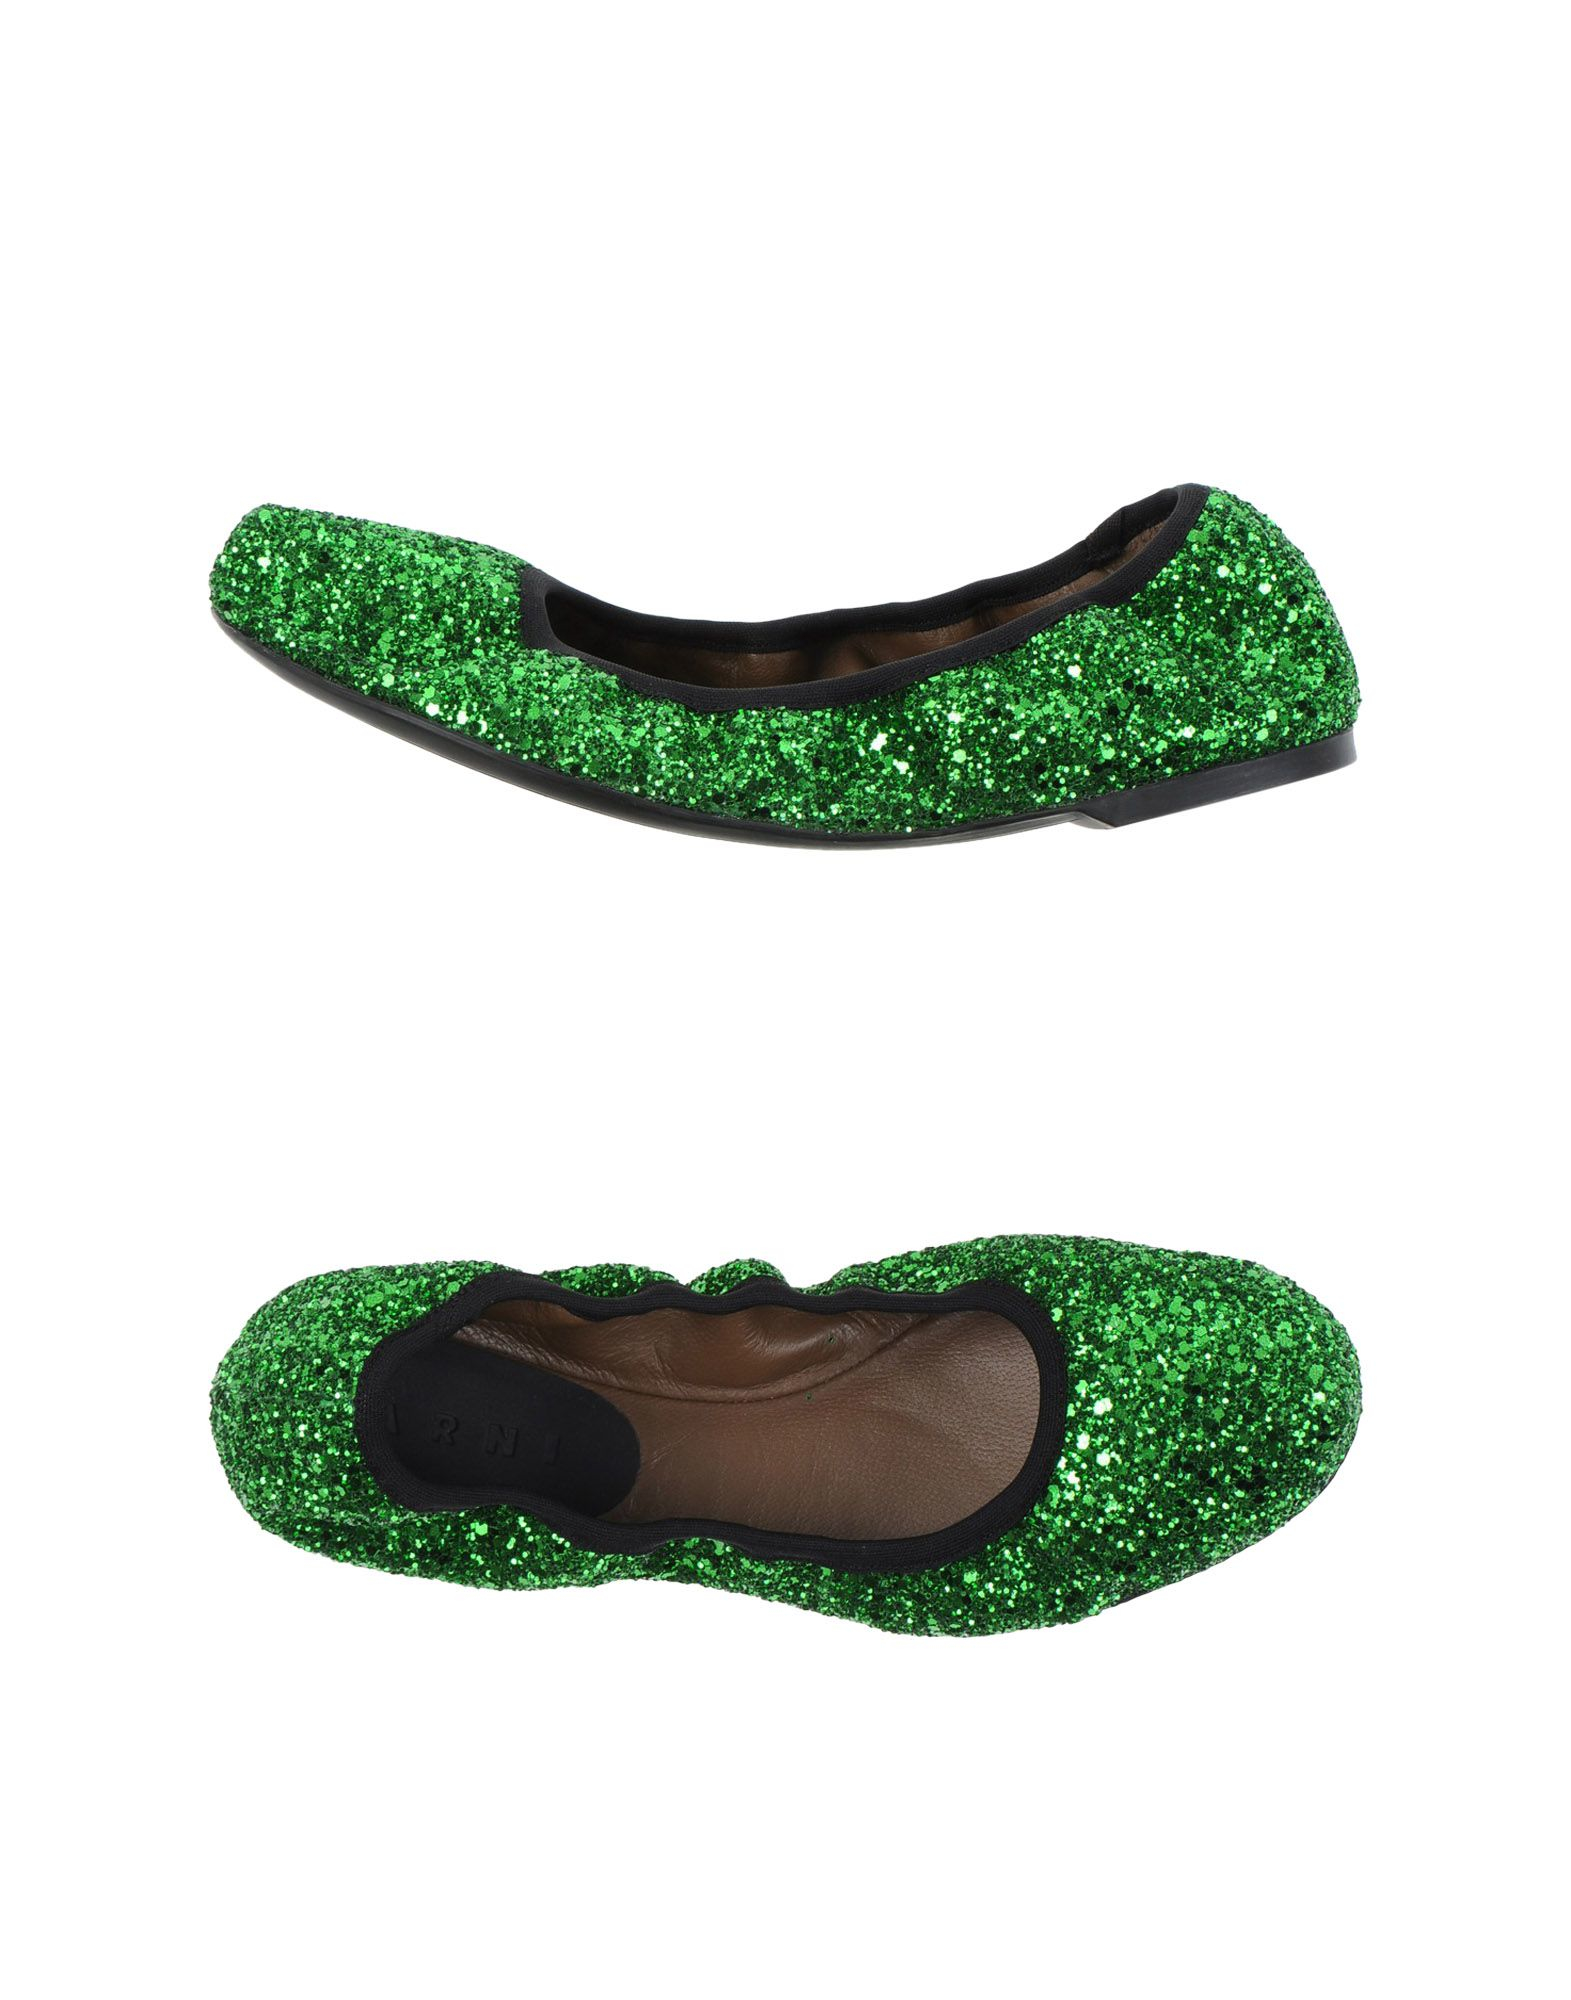 Green Ballet Shoes Womens